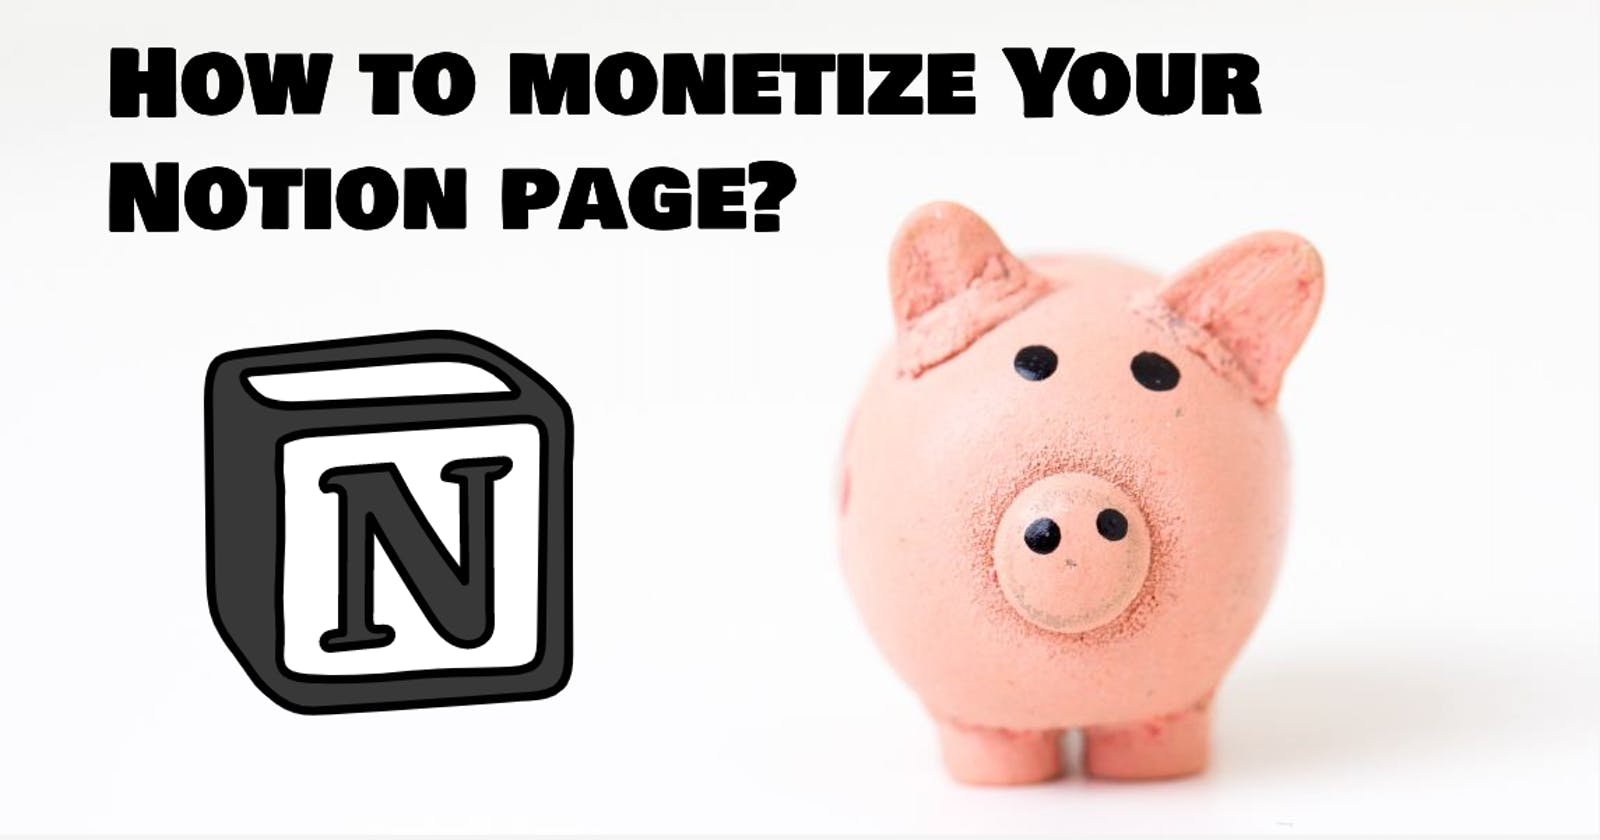 How to monetize your Notion page?